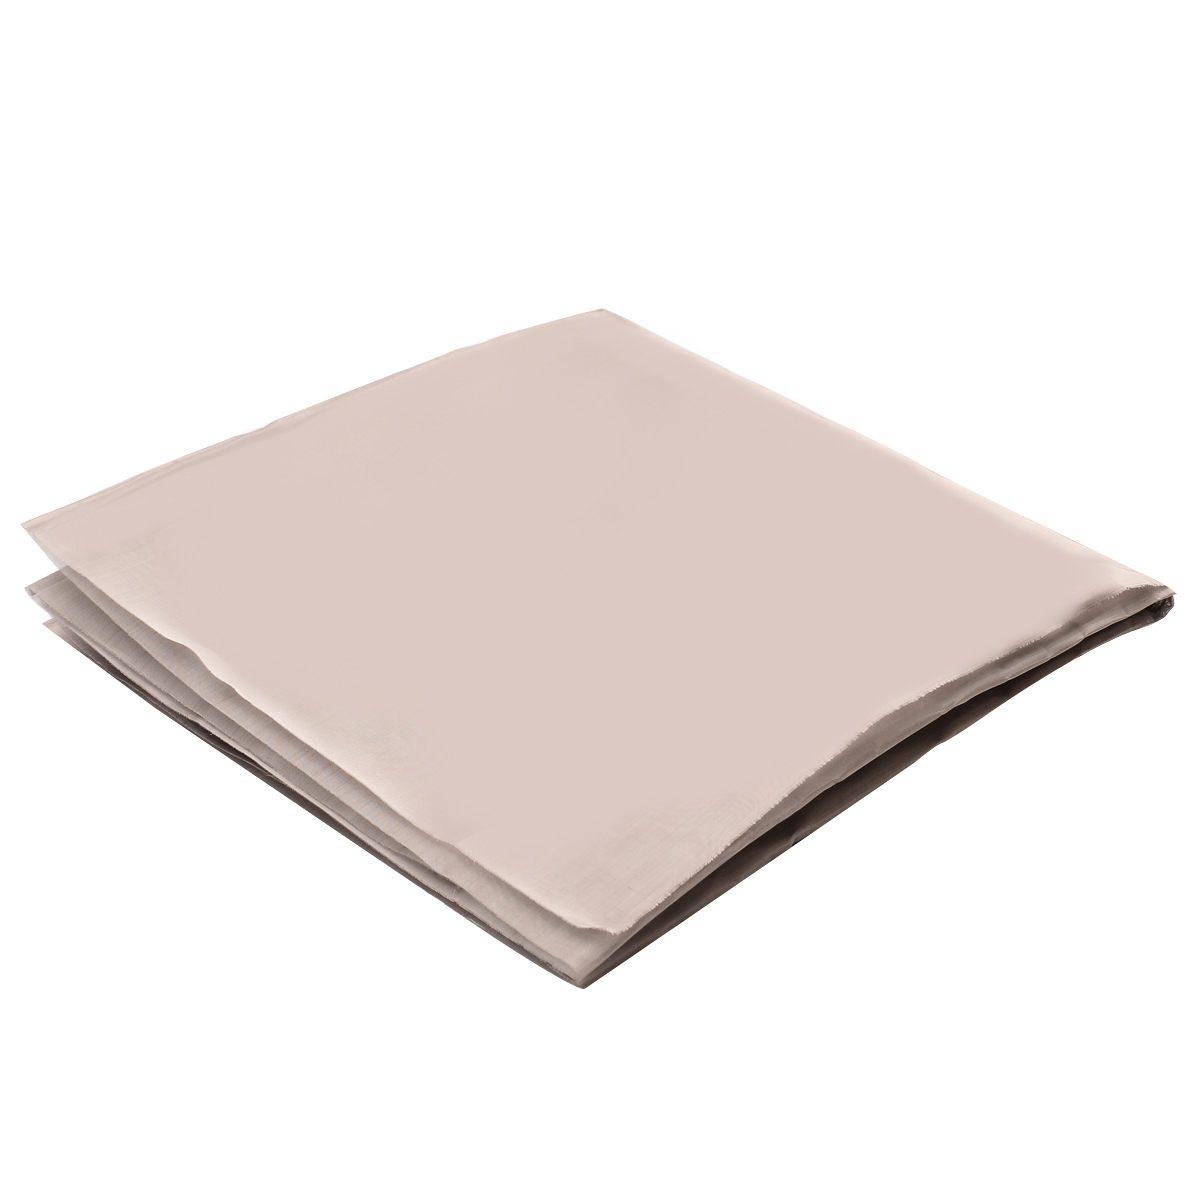 1pc 304 Stainless Steel 200 Mesh Filtration Woven Wire Water Oil Screen Fliter 30x60cm Mayitr 100 mesh filtration woven wire stainless steel cloth screen water filter sheet 11 8 for filtering oil honey mayitr home tools